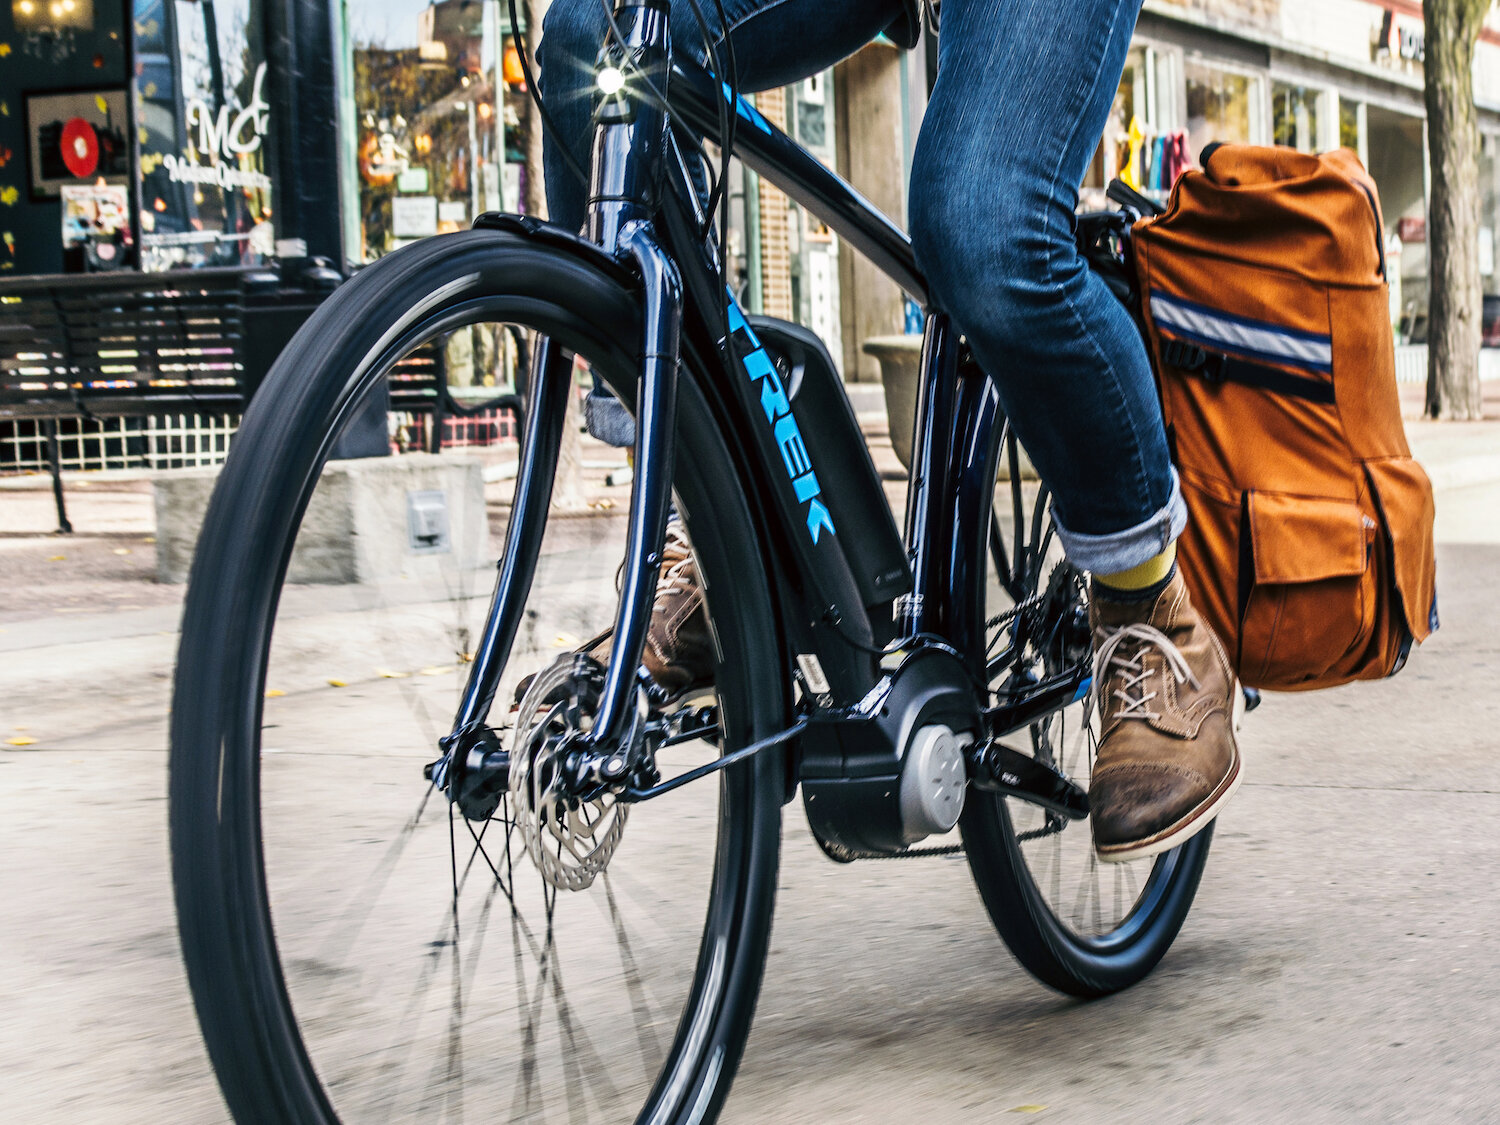 We recommend the following Class 2 e-bikes for commuting: Trek Verve+ (pictured above), Trek Dual Sport+, Electra Townie Go!, Blix Aveny, Blix Sol, Blix Packa and Blix Vika.